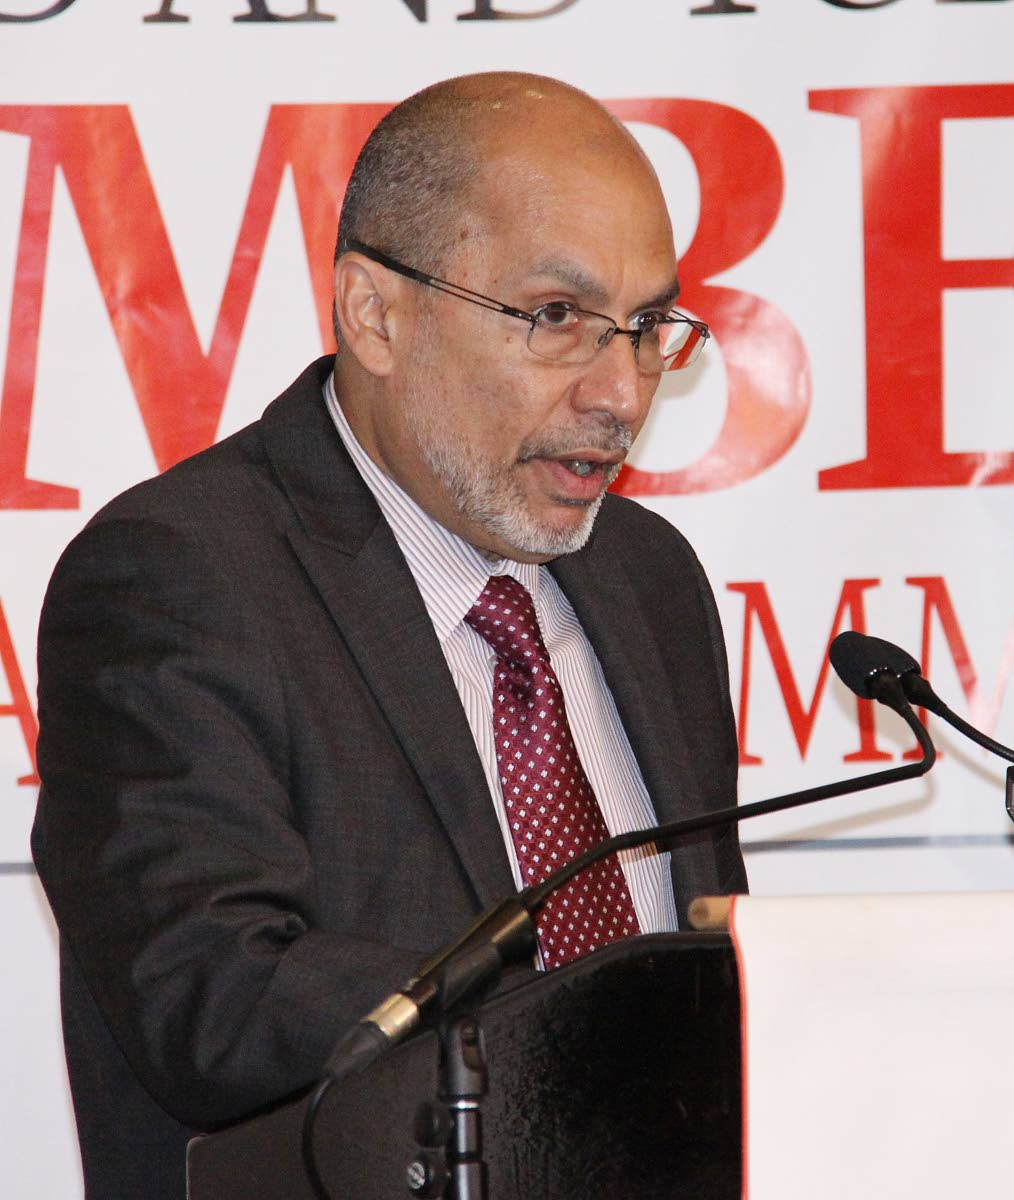 Chamber of Industry and Commerce CEO Gabriel Faria